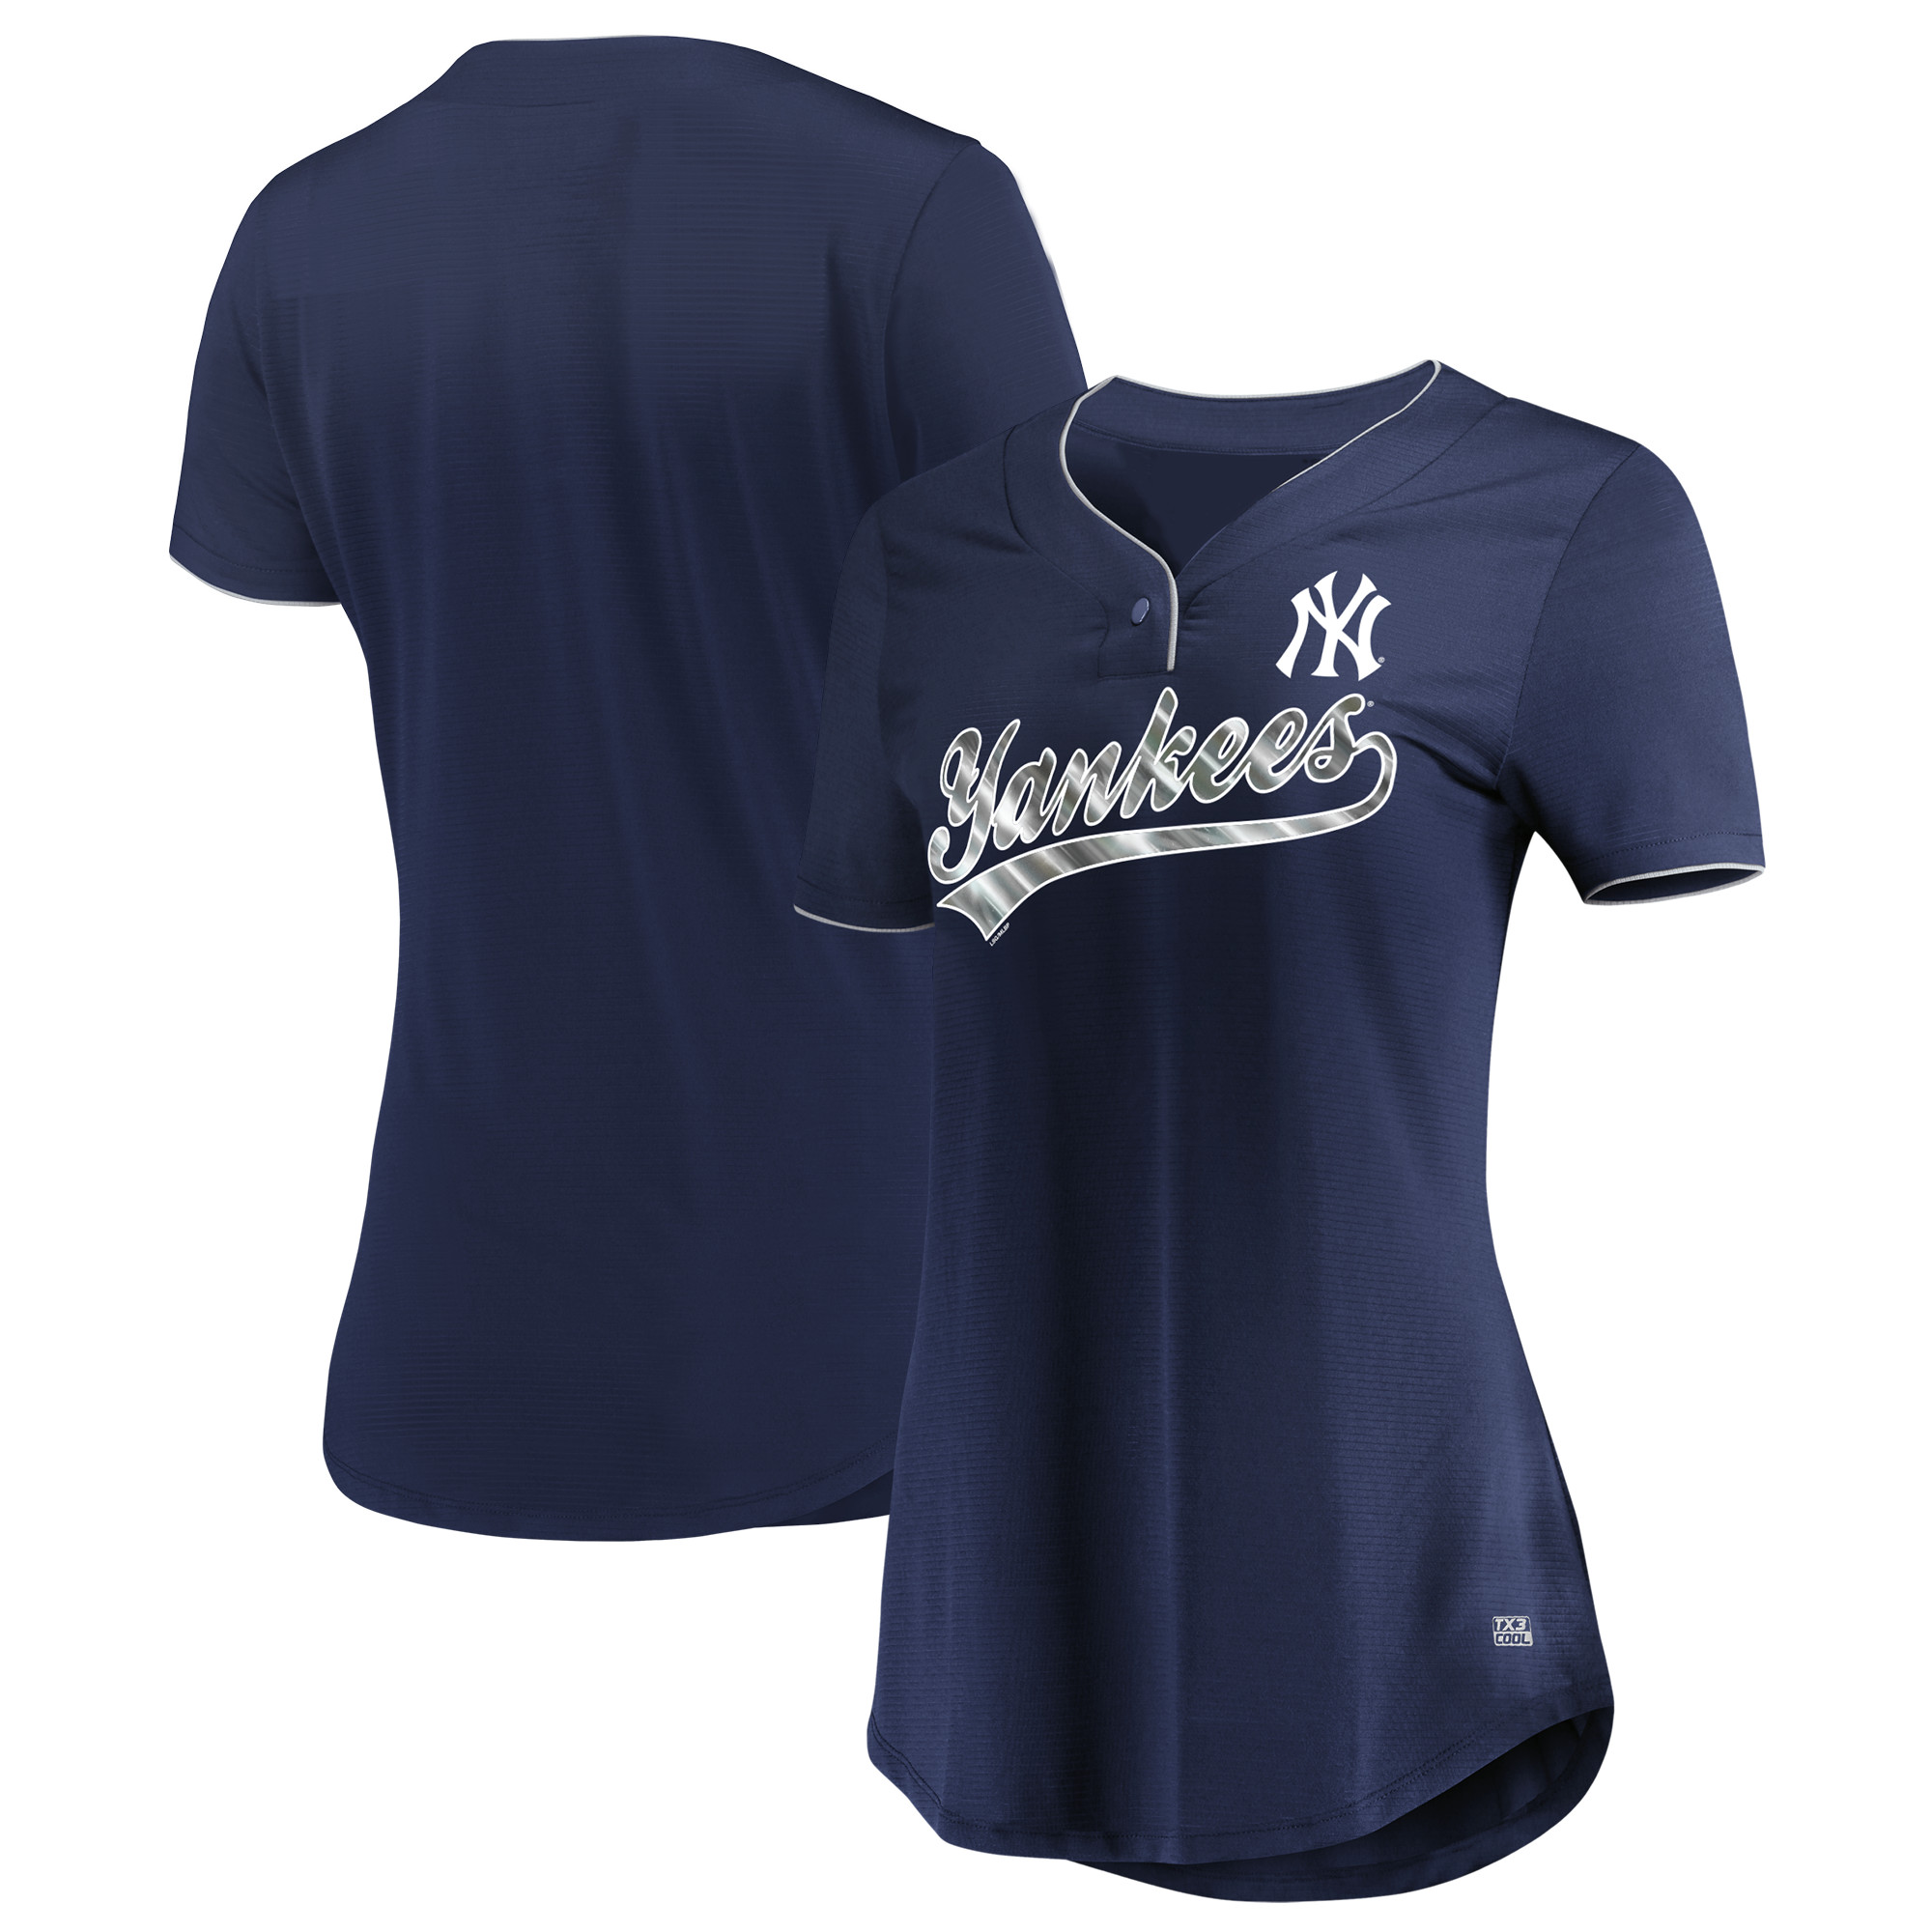 Women's Majestic Navy New York Yankees Memorable Season TX3 Cool Fabric V-Neck T-Shirt